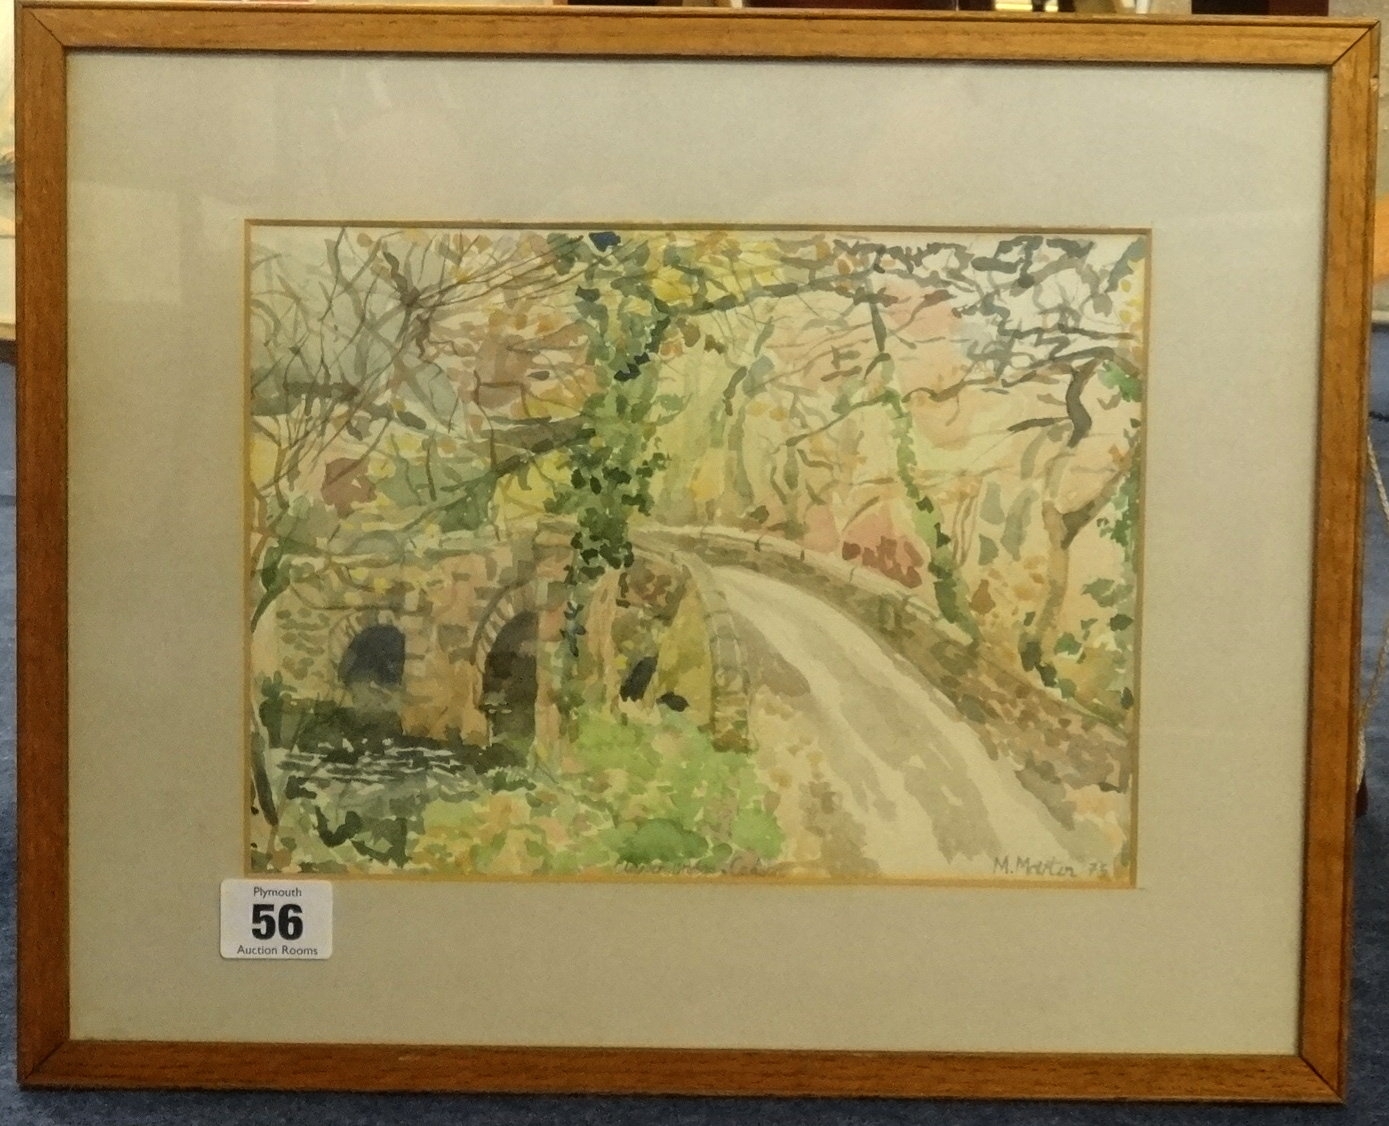 Lot 56 - Mary Martin (born 1951) signed watercolour, 1975, 'Tapper Bridge' near Callington, 18cm x 24cm.